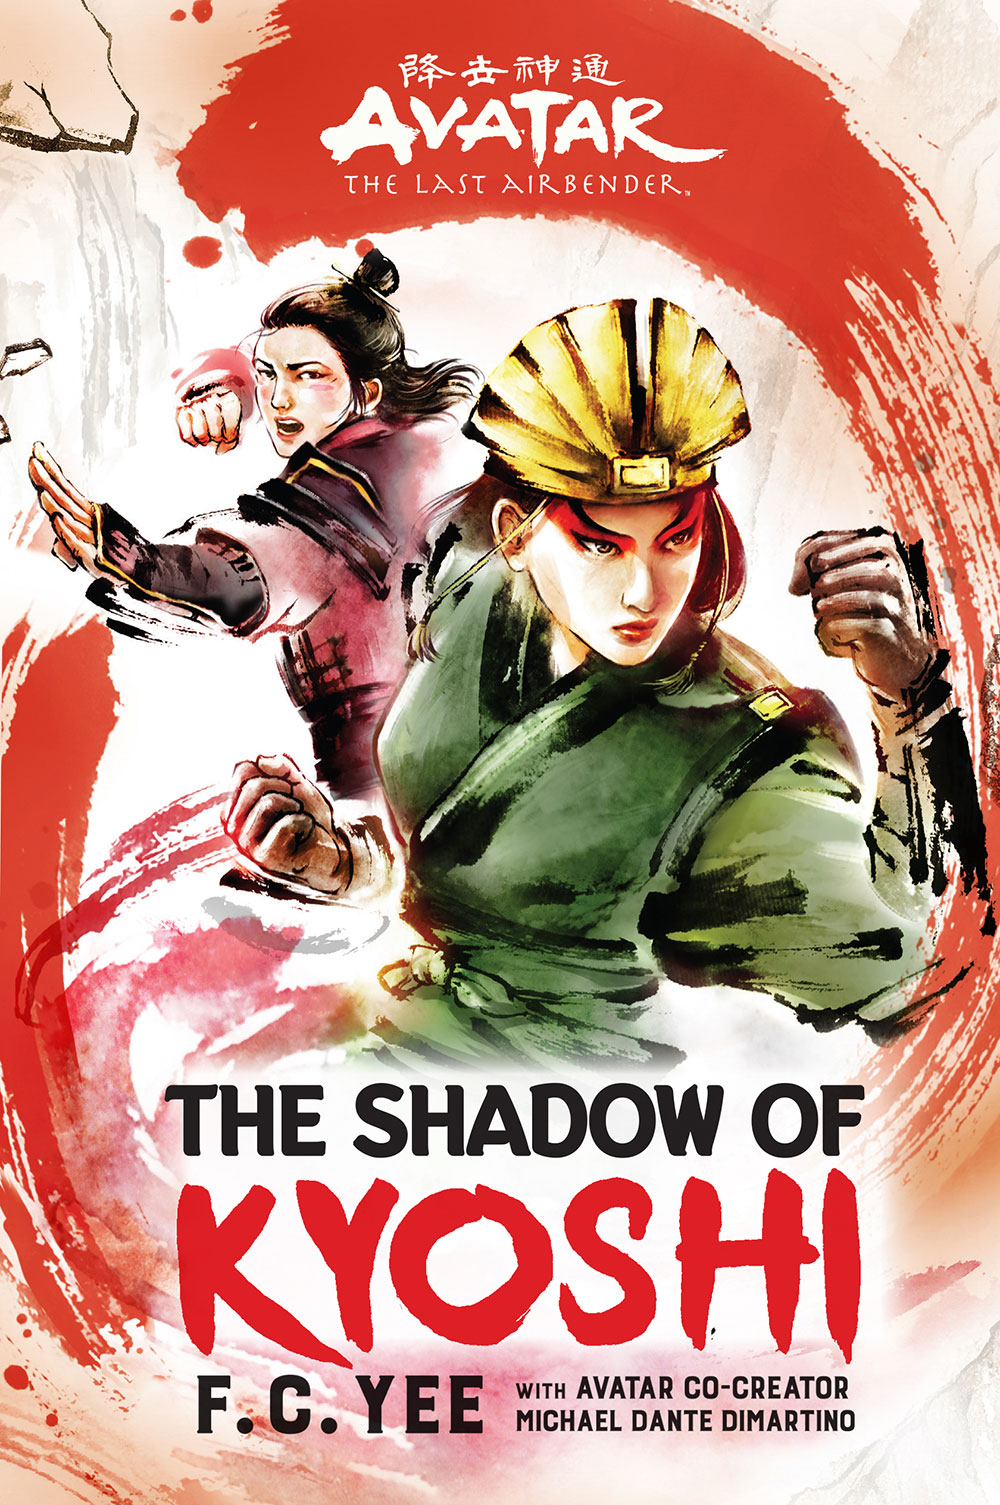 The Shadow of Kyoshi (The Kyoshi Novels #2) by F.C. Yee